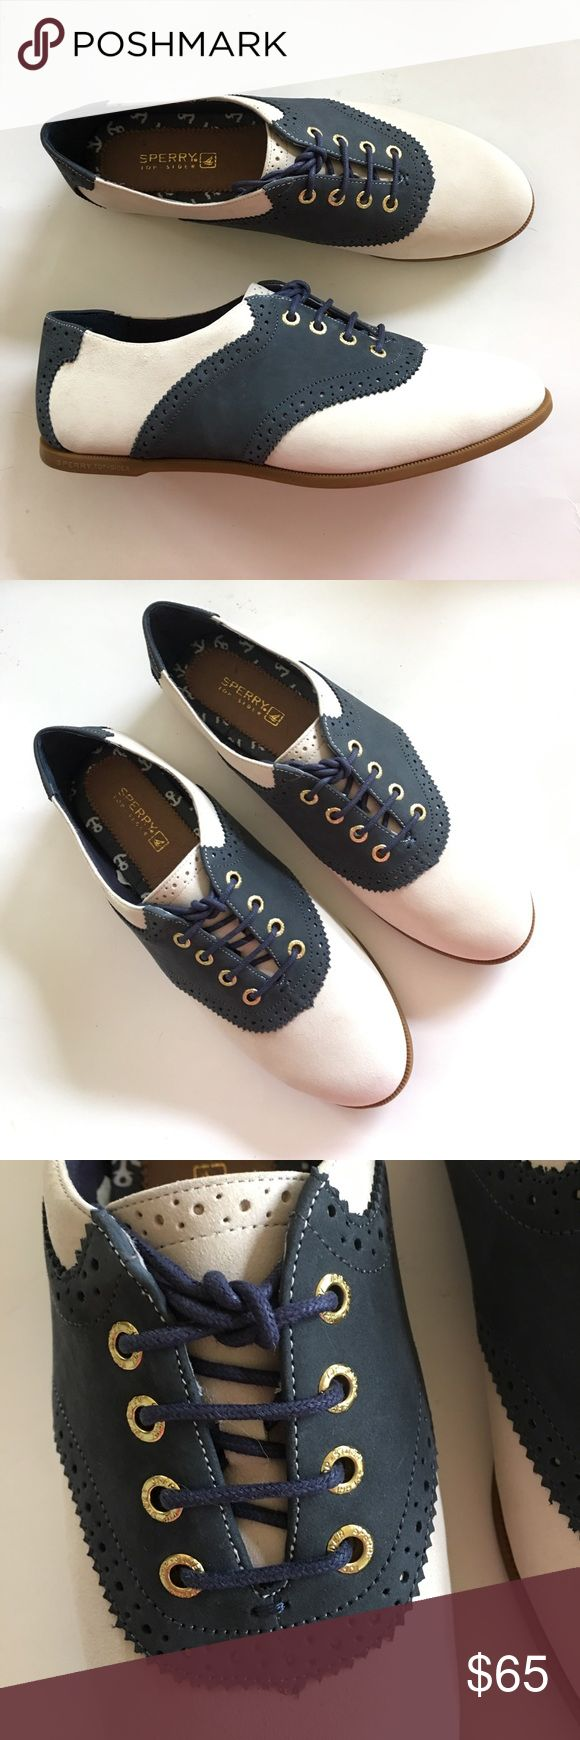 NEW SPERRY TOP SIDER navy ivory oxford saddle shoe NEW IN BOX W TAGS. Leather upper, non skid traction outsole. Golden tone hardware. Retro styling with all of the comfort of a great, quality-branded shoe! EUR 39. US 8. Please visit my closet for more new with tags shoes, boots, clothes, swimwear, sleepwear, and more! AWESOME bundling opportunities from over 900 available listings. (Save on shipping!) Sperry Top-Sider Shoes Flats & Loafers